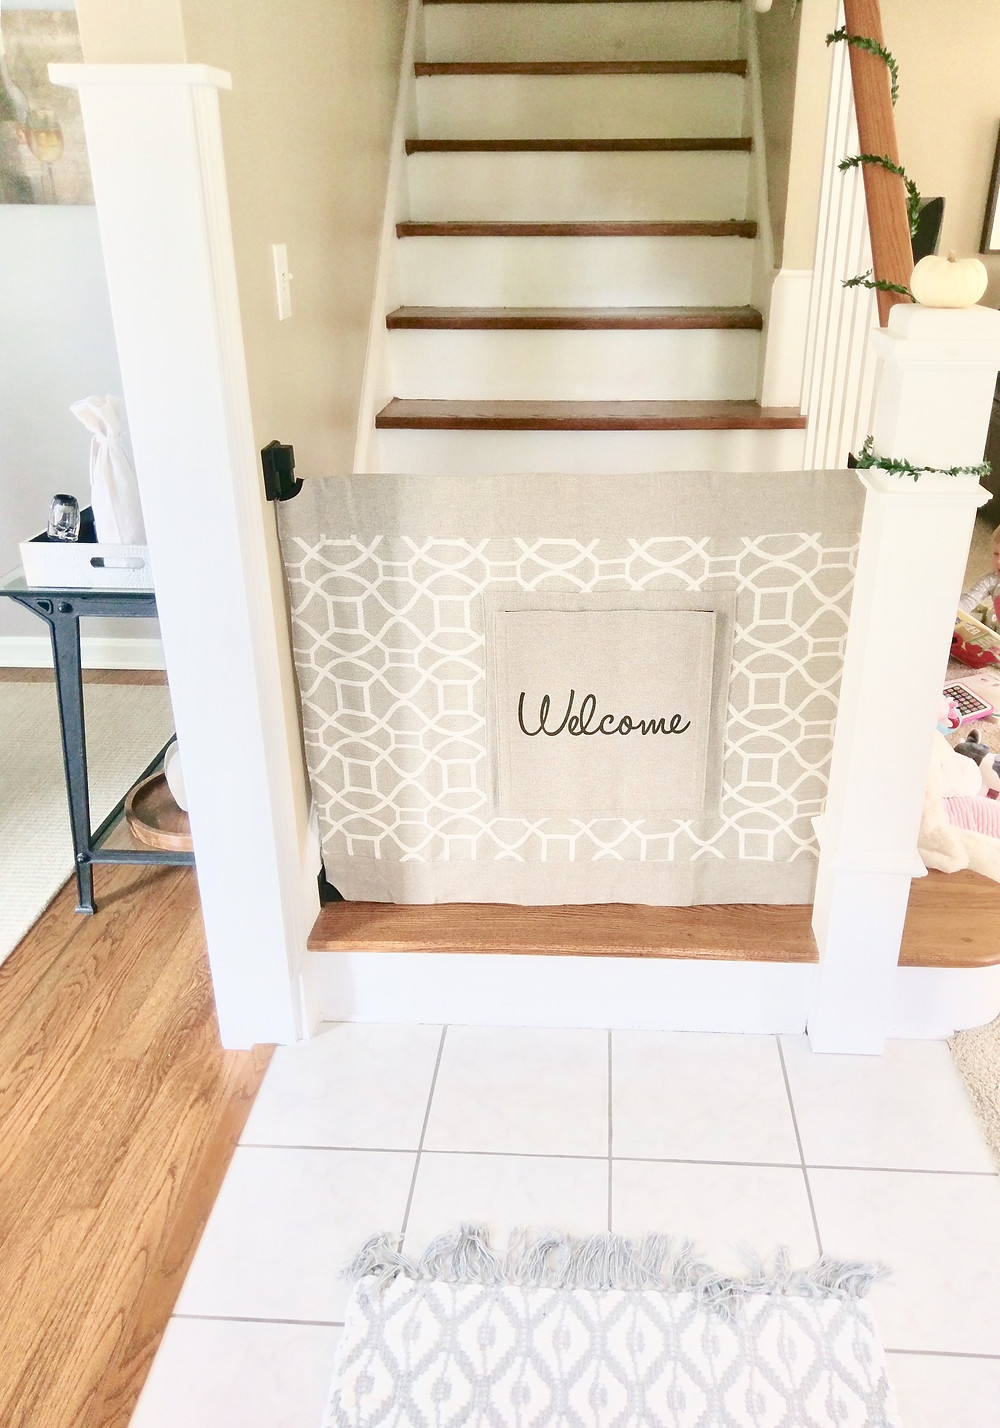 Stylish infant baby gate for stairs